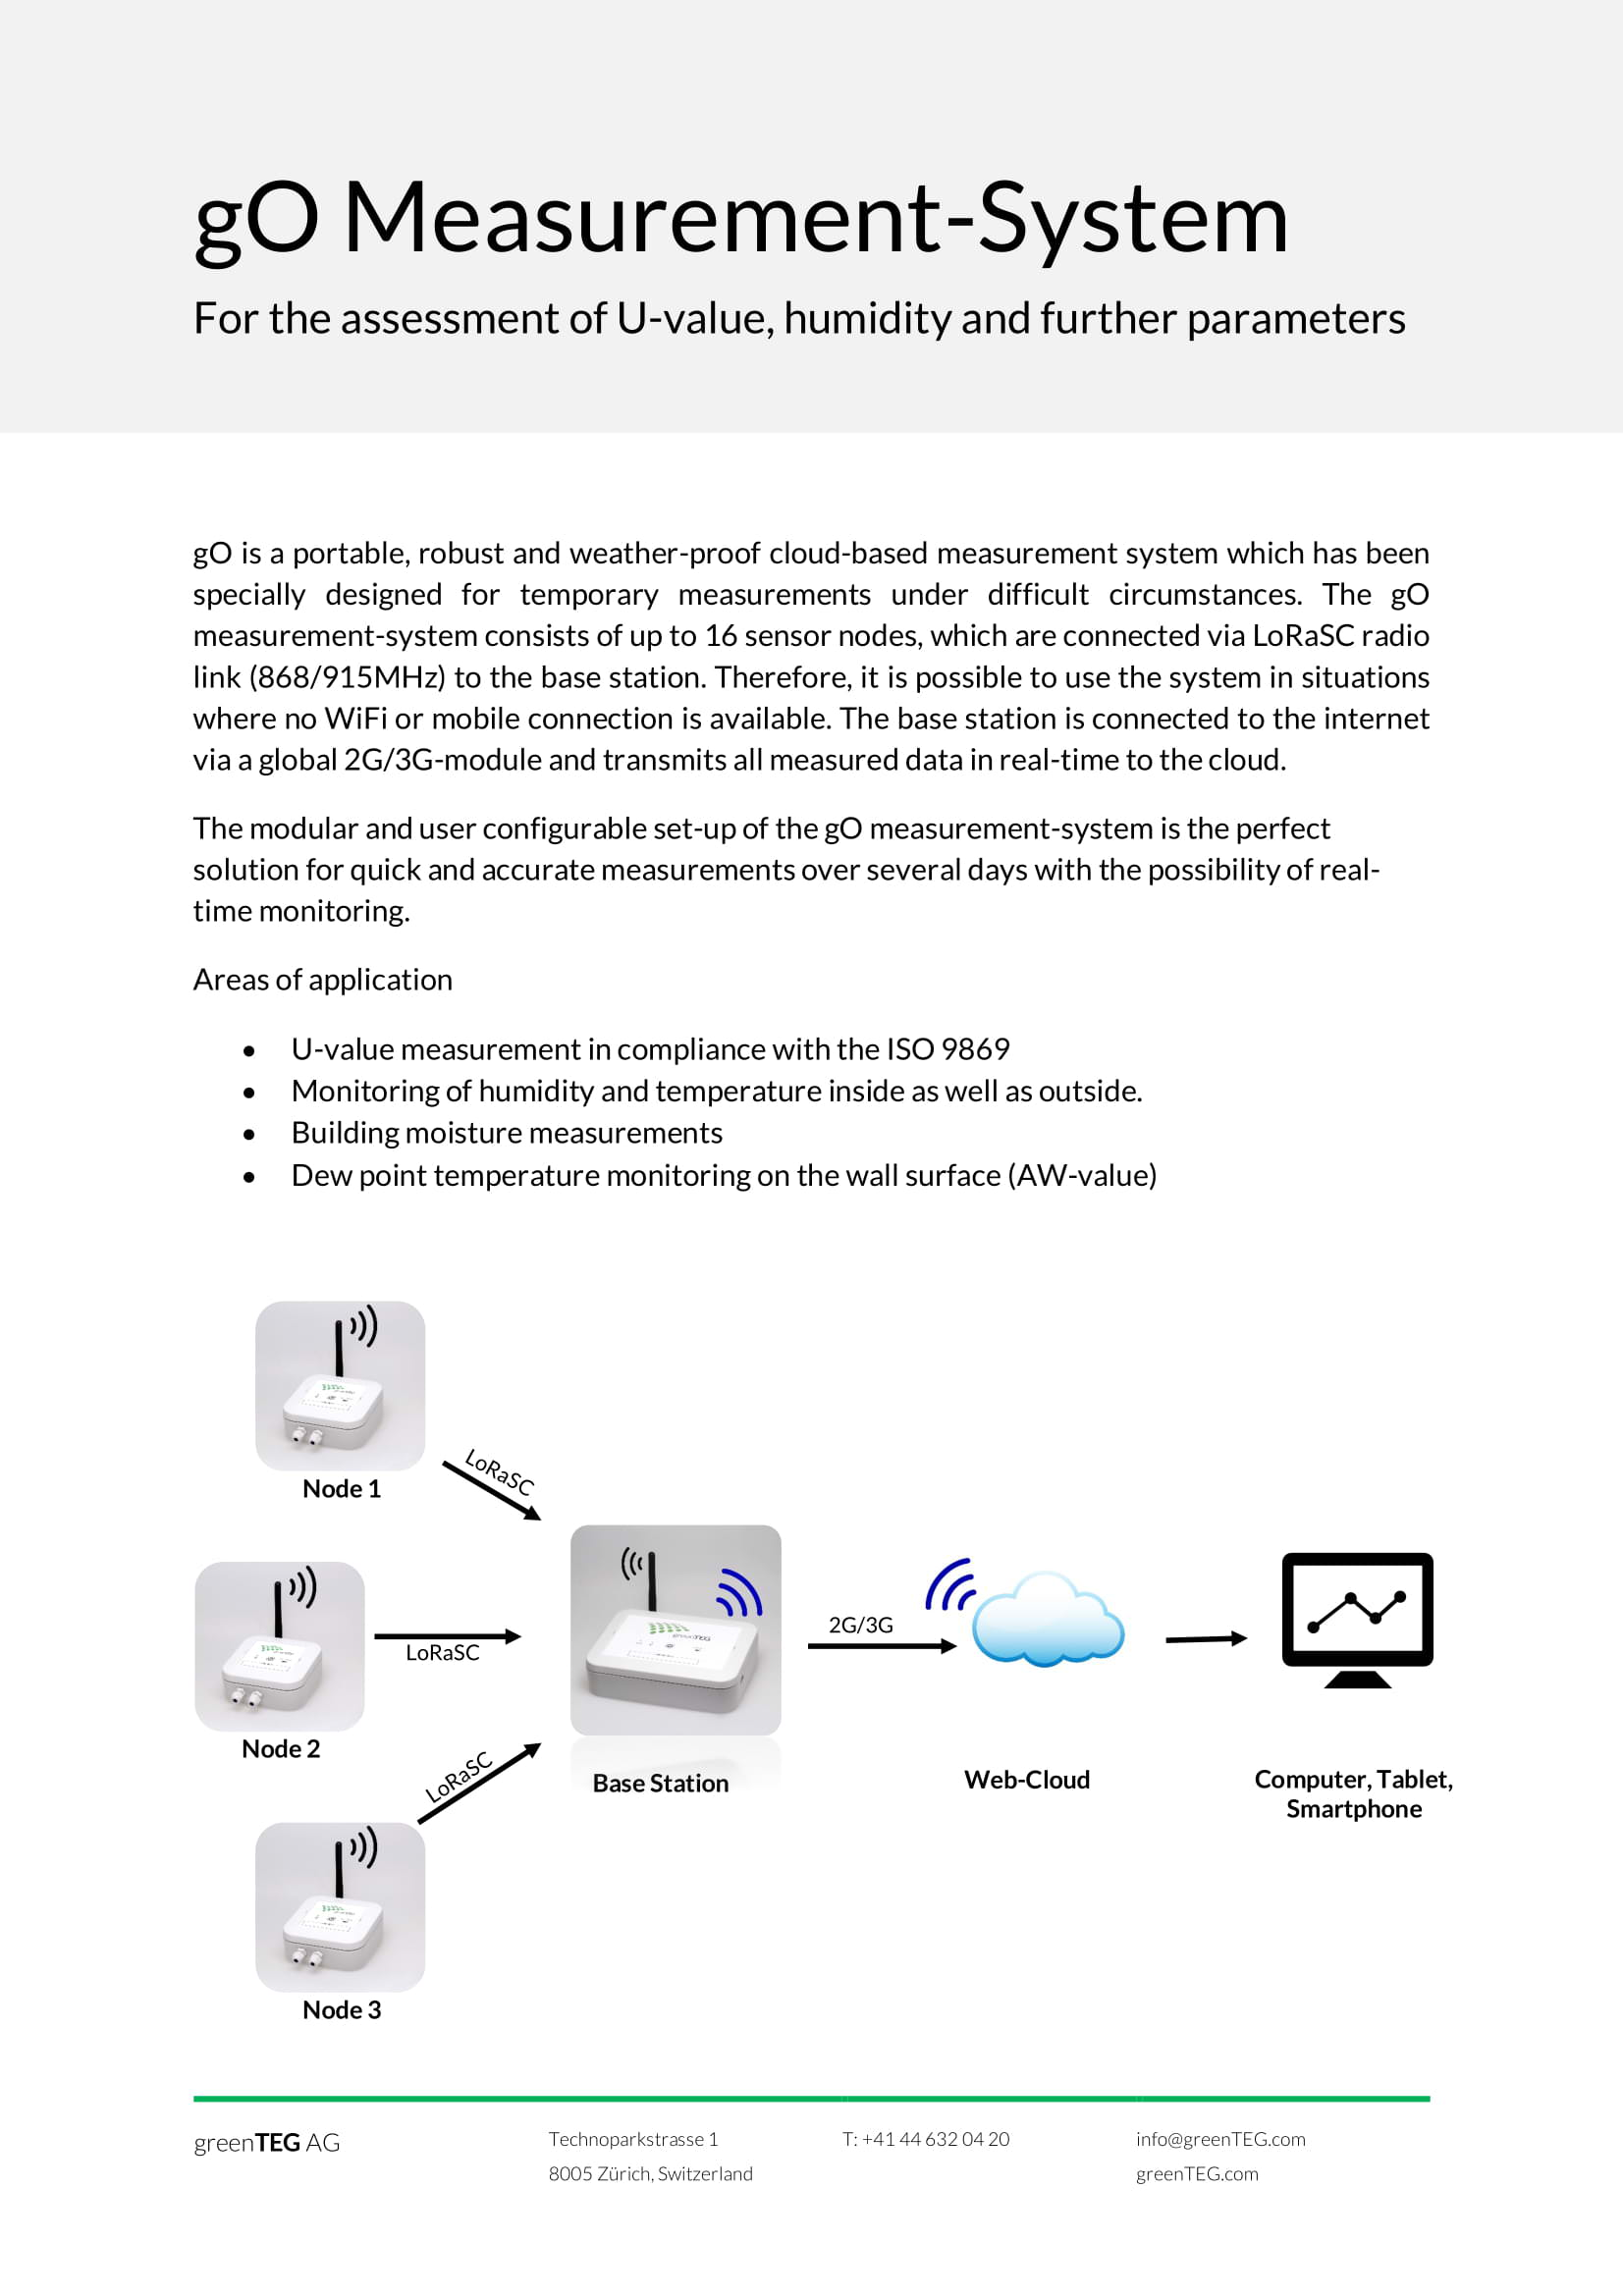 Gallery gO Measurement-System (gOMS) 4